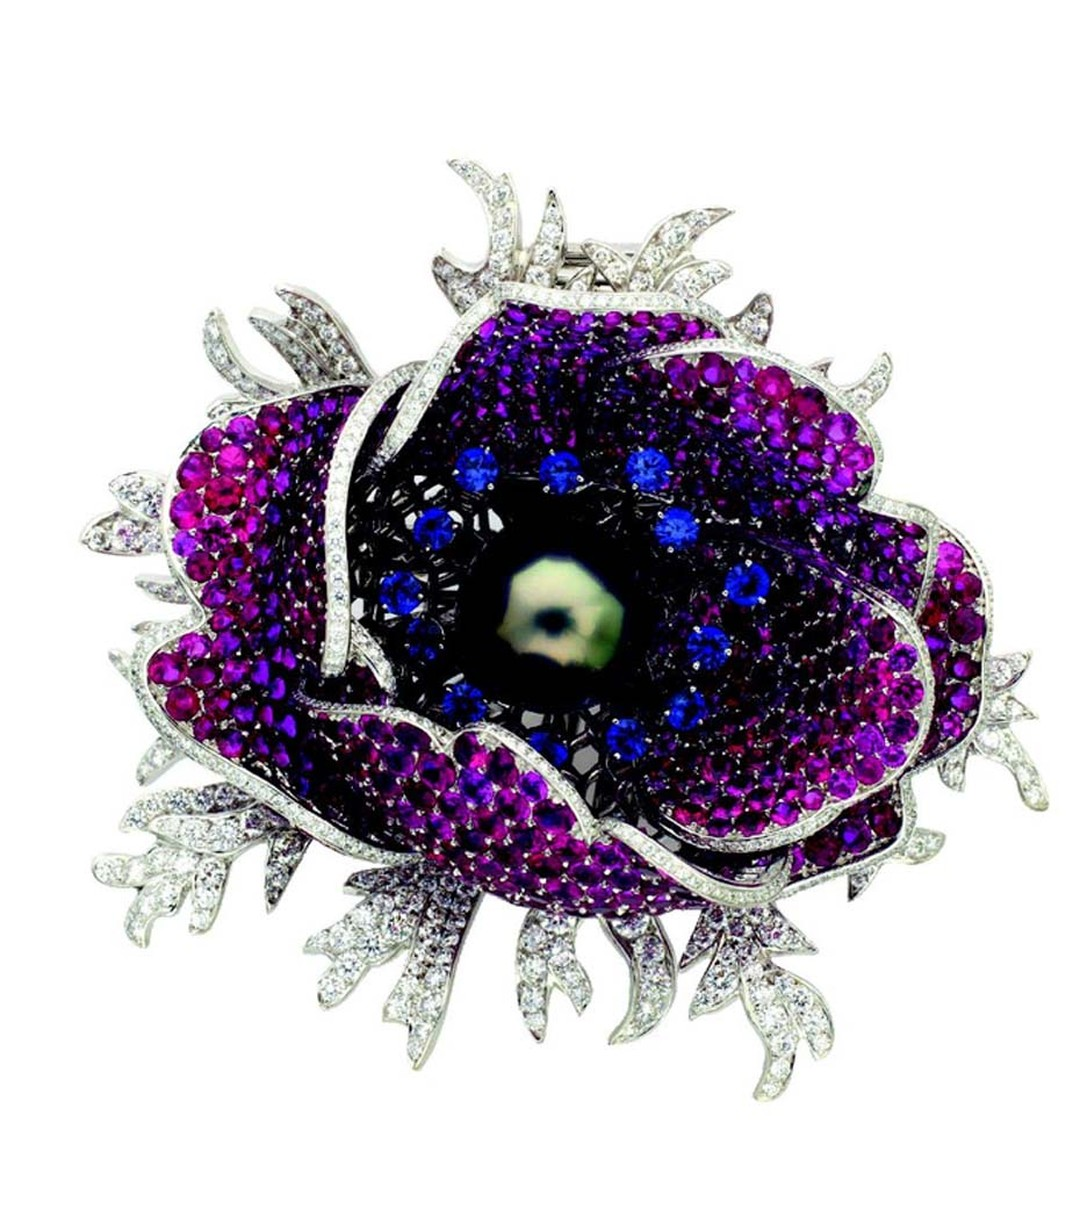 Van Cleef & Arpels 2008 Garance Poppy clip set with rubies, blue sapphires and a grey cultured pearl © Van Cleef & Arpels.